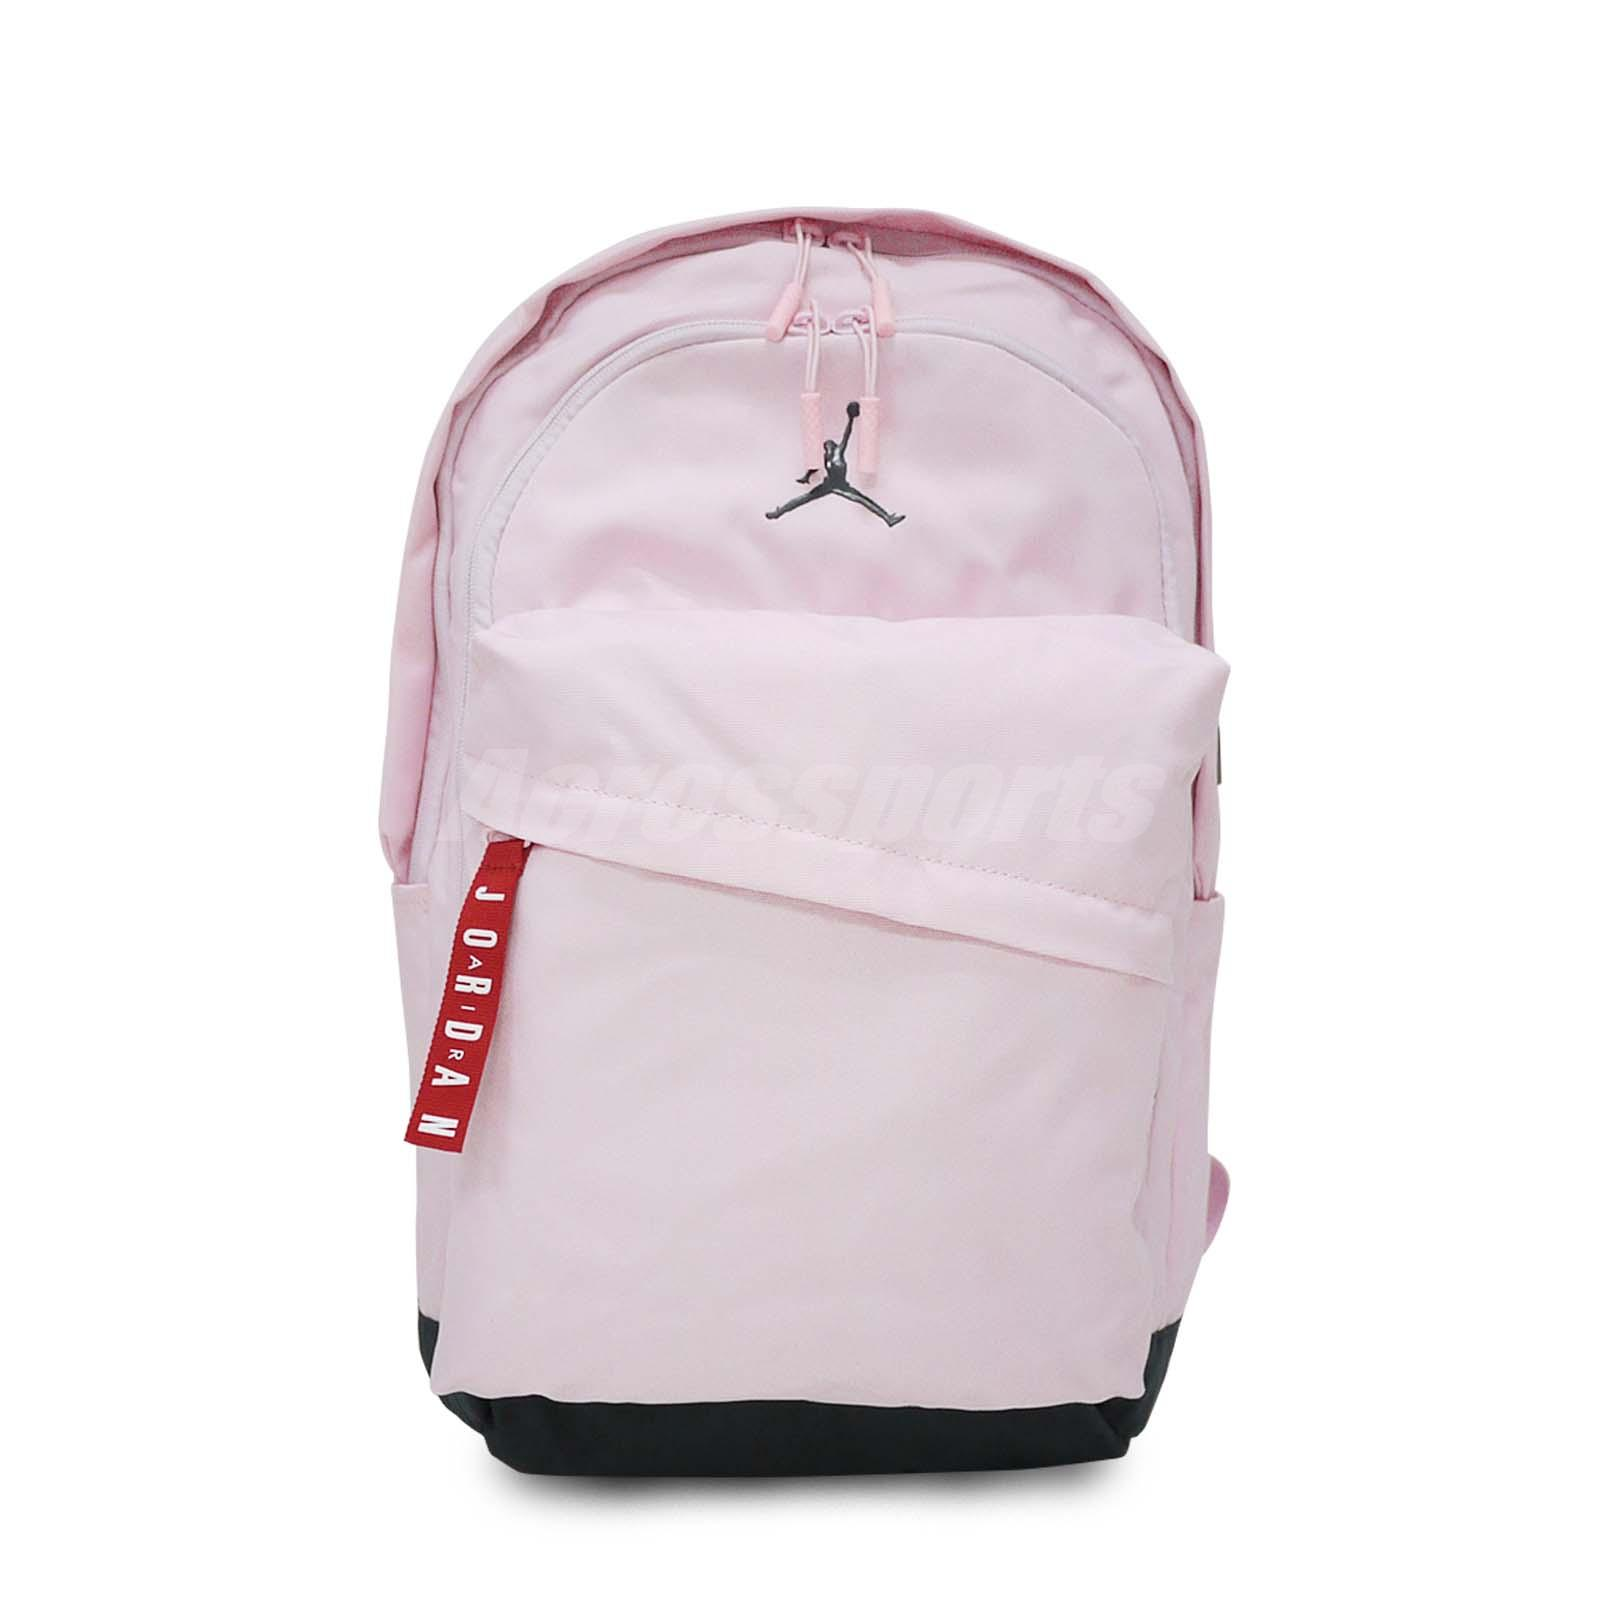 cb23e209cec2 Nike Jordan Air Patrol Pack 27L Backpack Bookbag Pink Red Jumpman ...